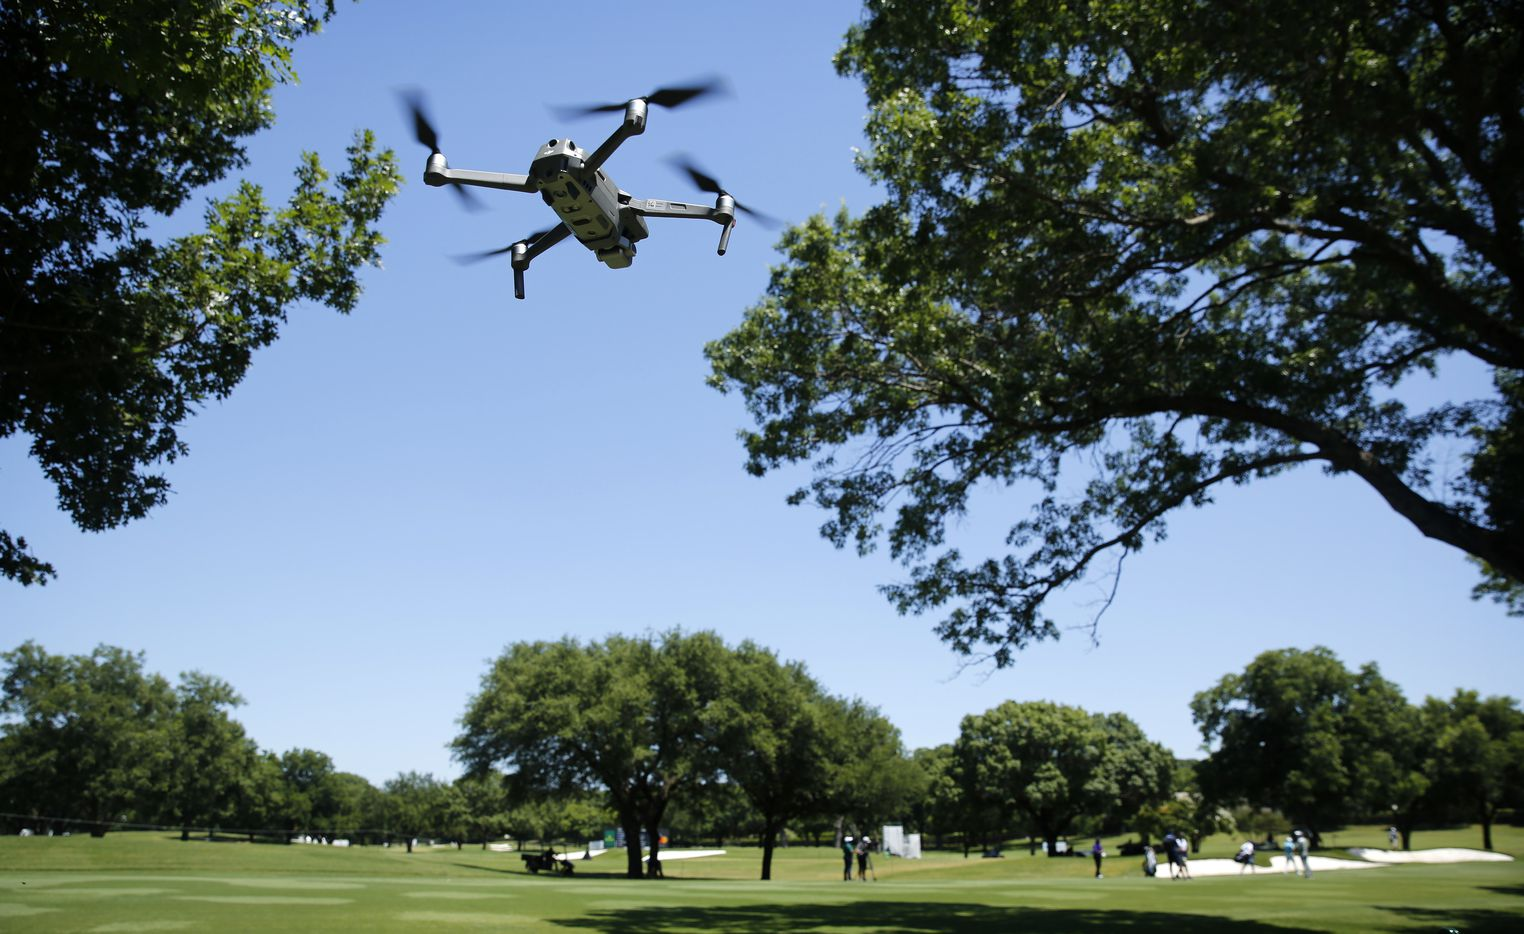 A drone films PGA Tour golfer and leader Jordan Spieth during the third round of the Charles Schwab Challenge at the Colonial Country Club in Fort Worth, Saturday, June 13, 2020.  The Challenge is the first tour event since the COVID-19 pandemic began. (Tom Fox/The Dallas Morning News)